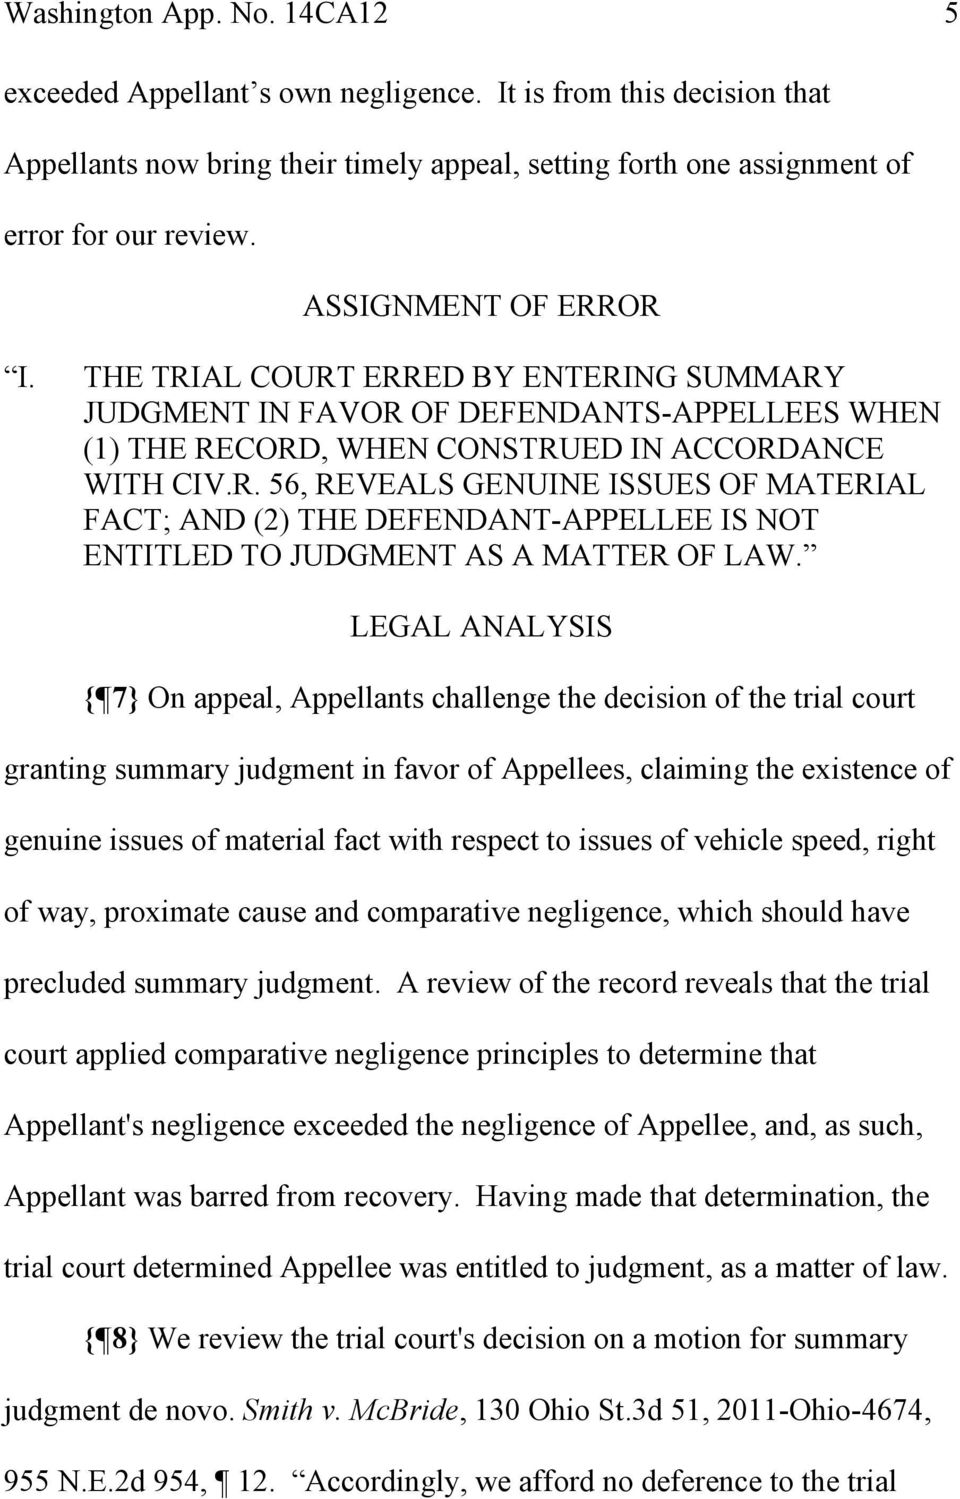 LEGAL ANALYSIS { 7} On appeal, Appellants challenge the decision of the trial court granting summary judgment in favor of Appellees, claiming the existence of genuine issues of material fact with